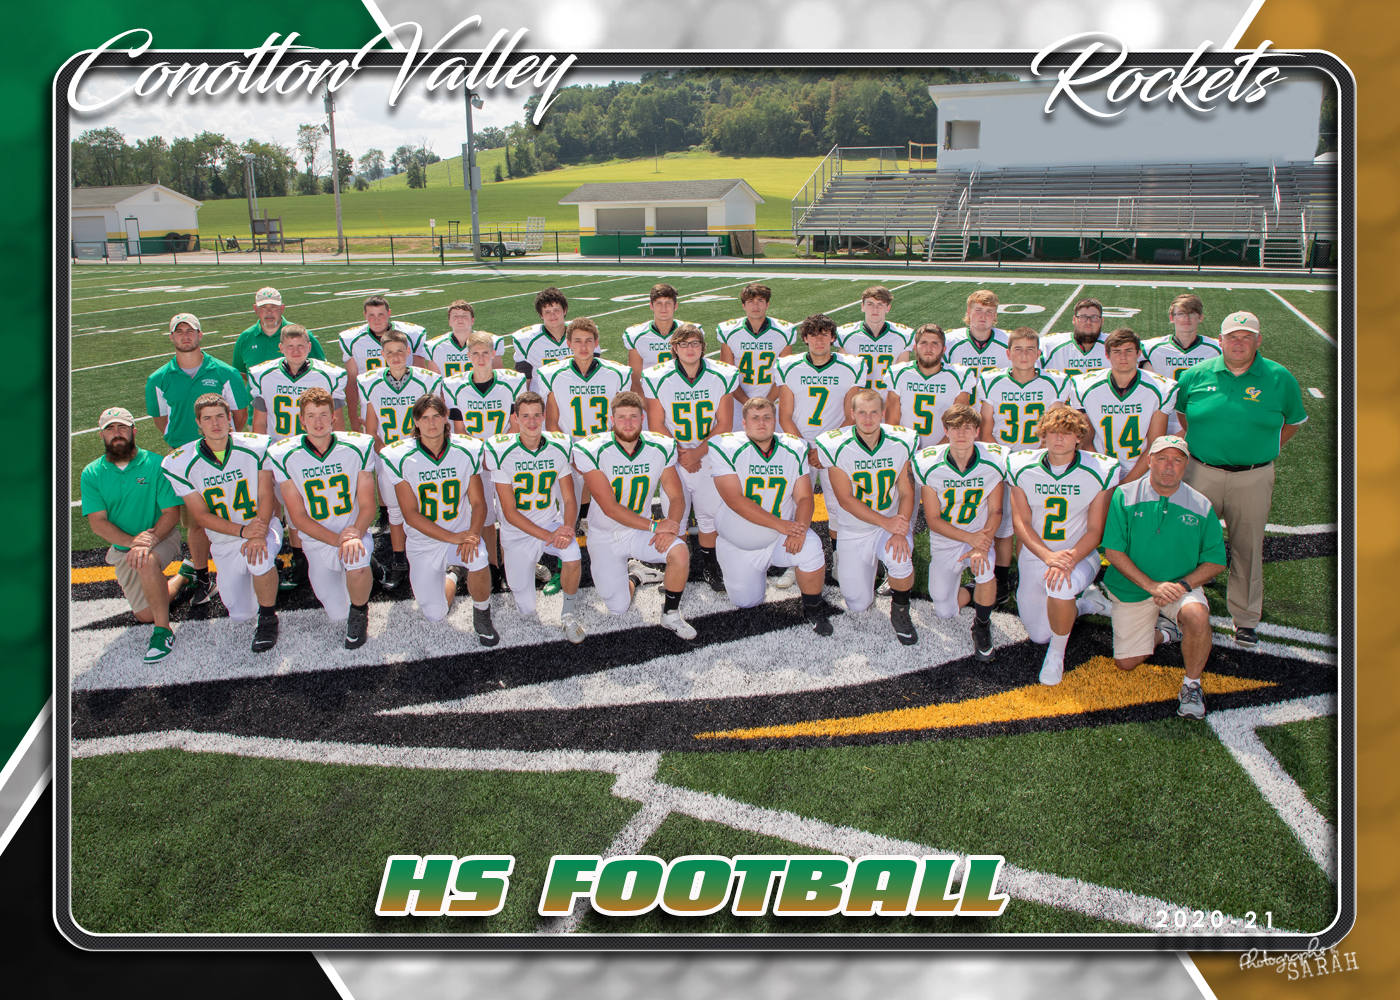 VARSITY FOOTBALL TEAM MOVES UP TO 2nd PLACE IN OVAC STANDINGS!